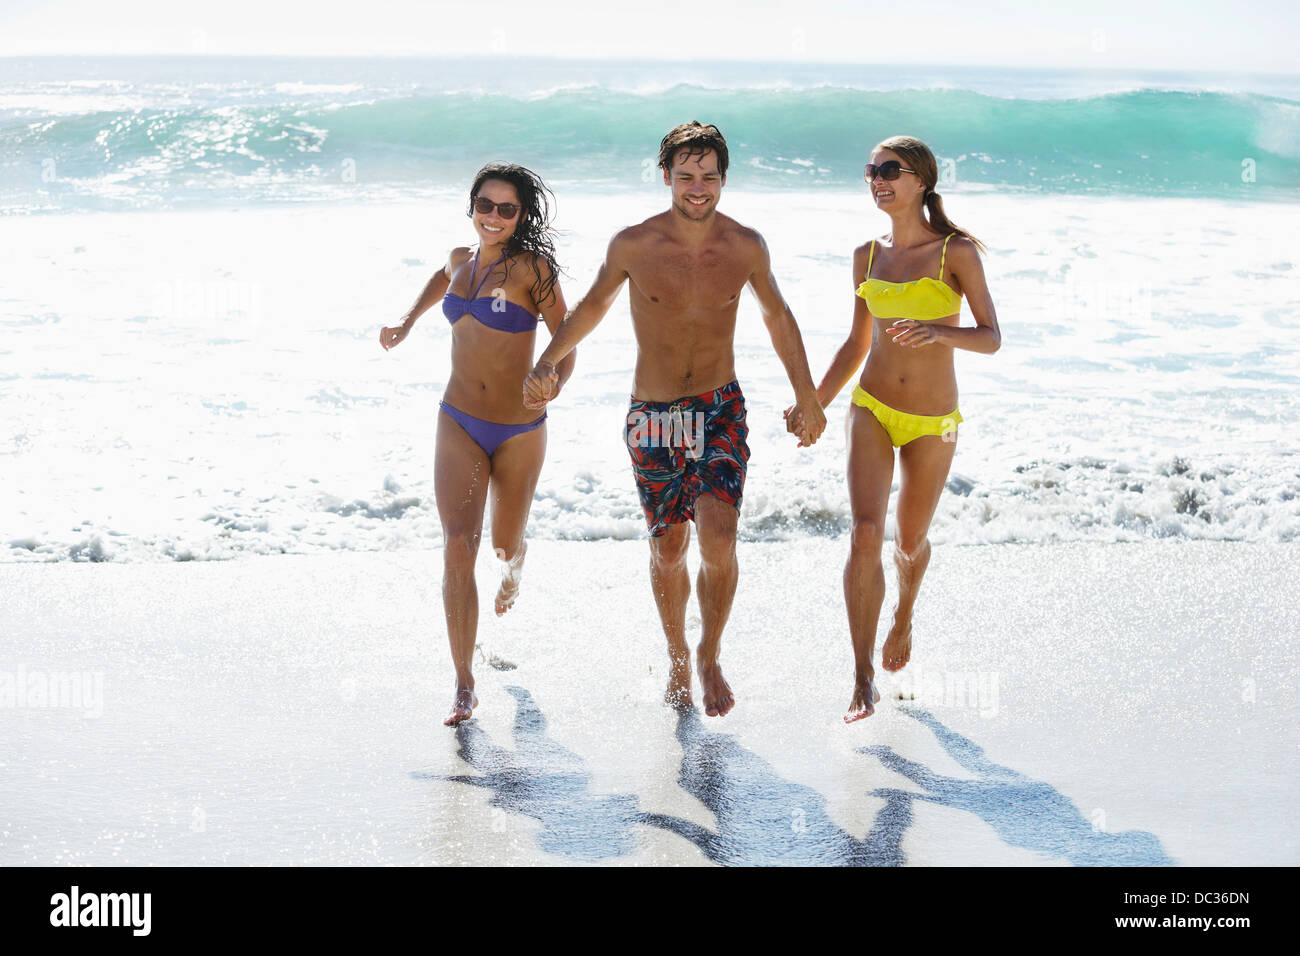 Friends holding hands and running on beach - Stock Image